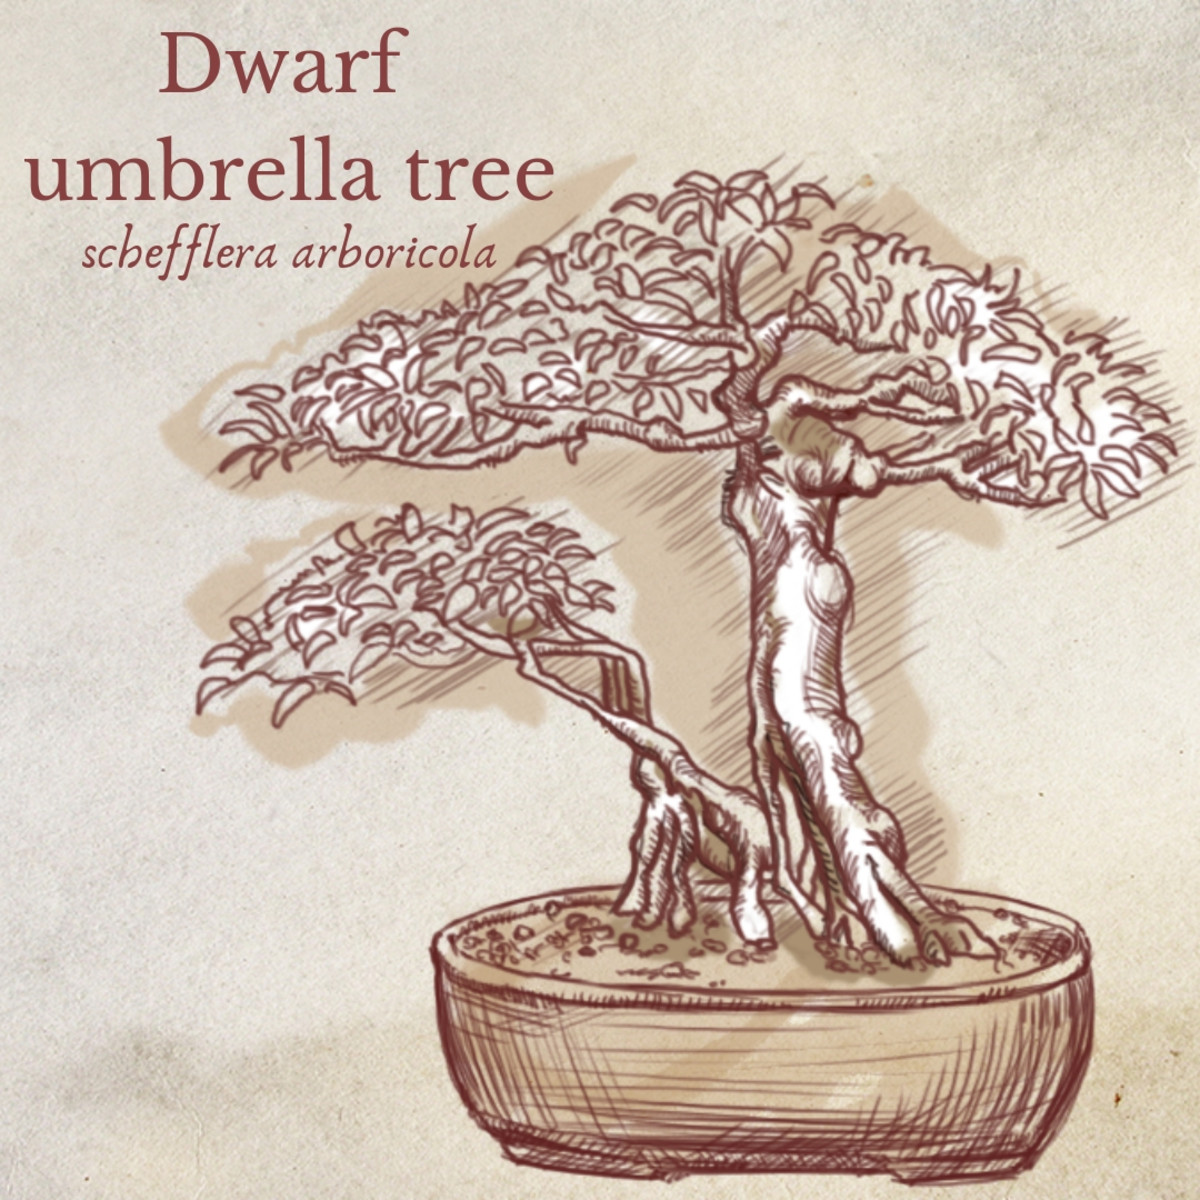 Illustration of Dwarf Umbrella Tree